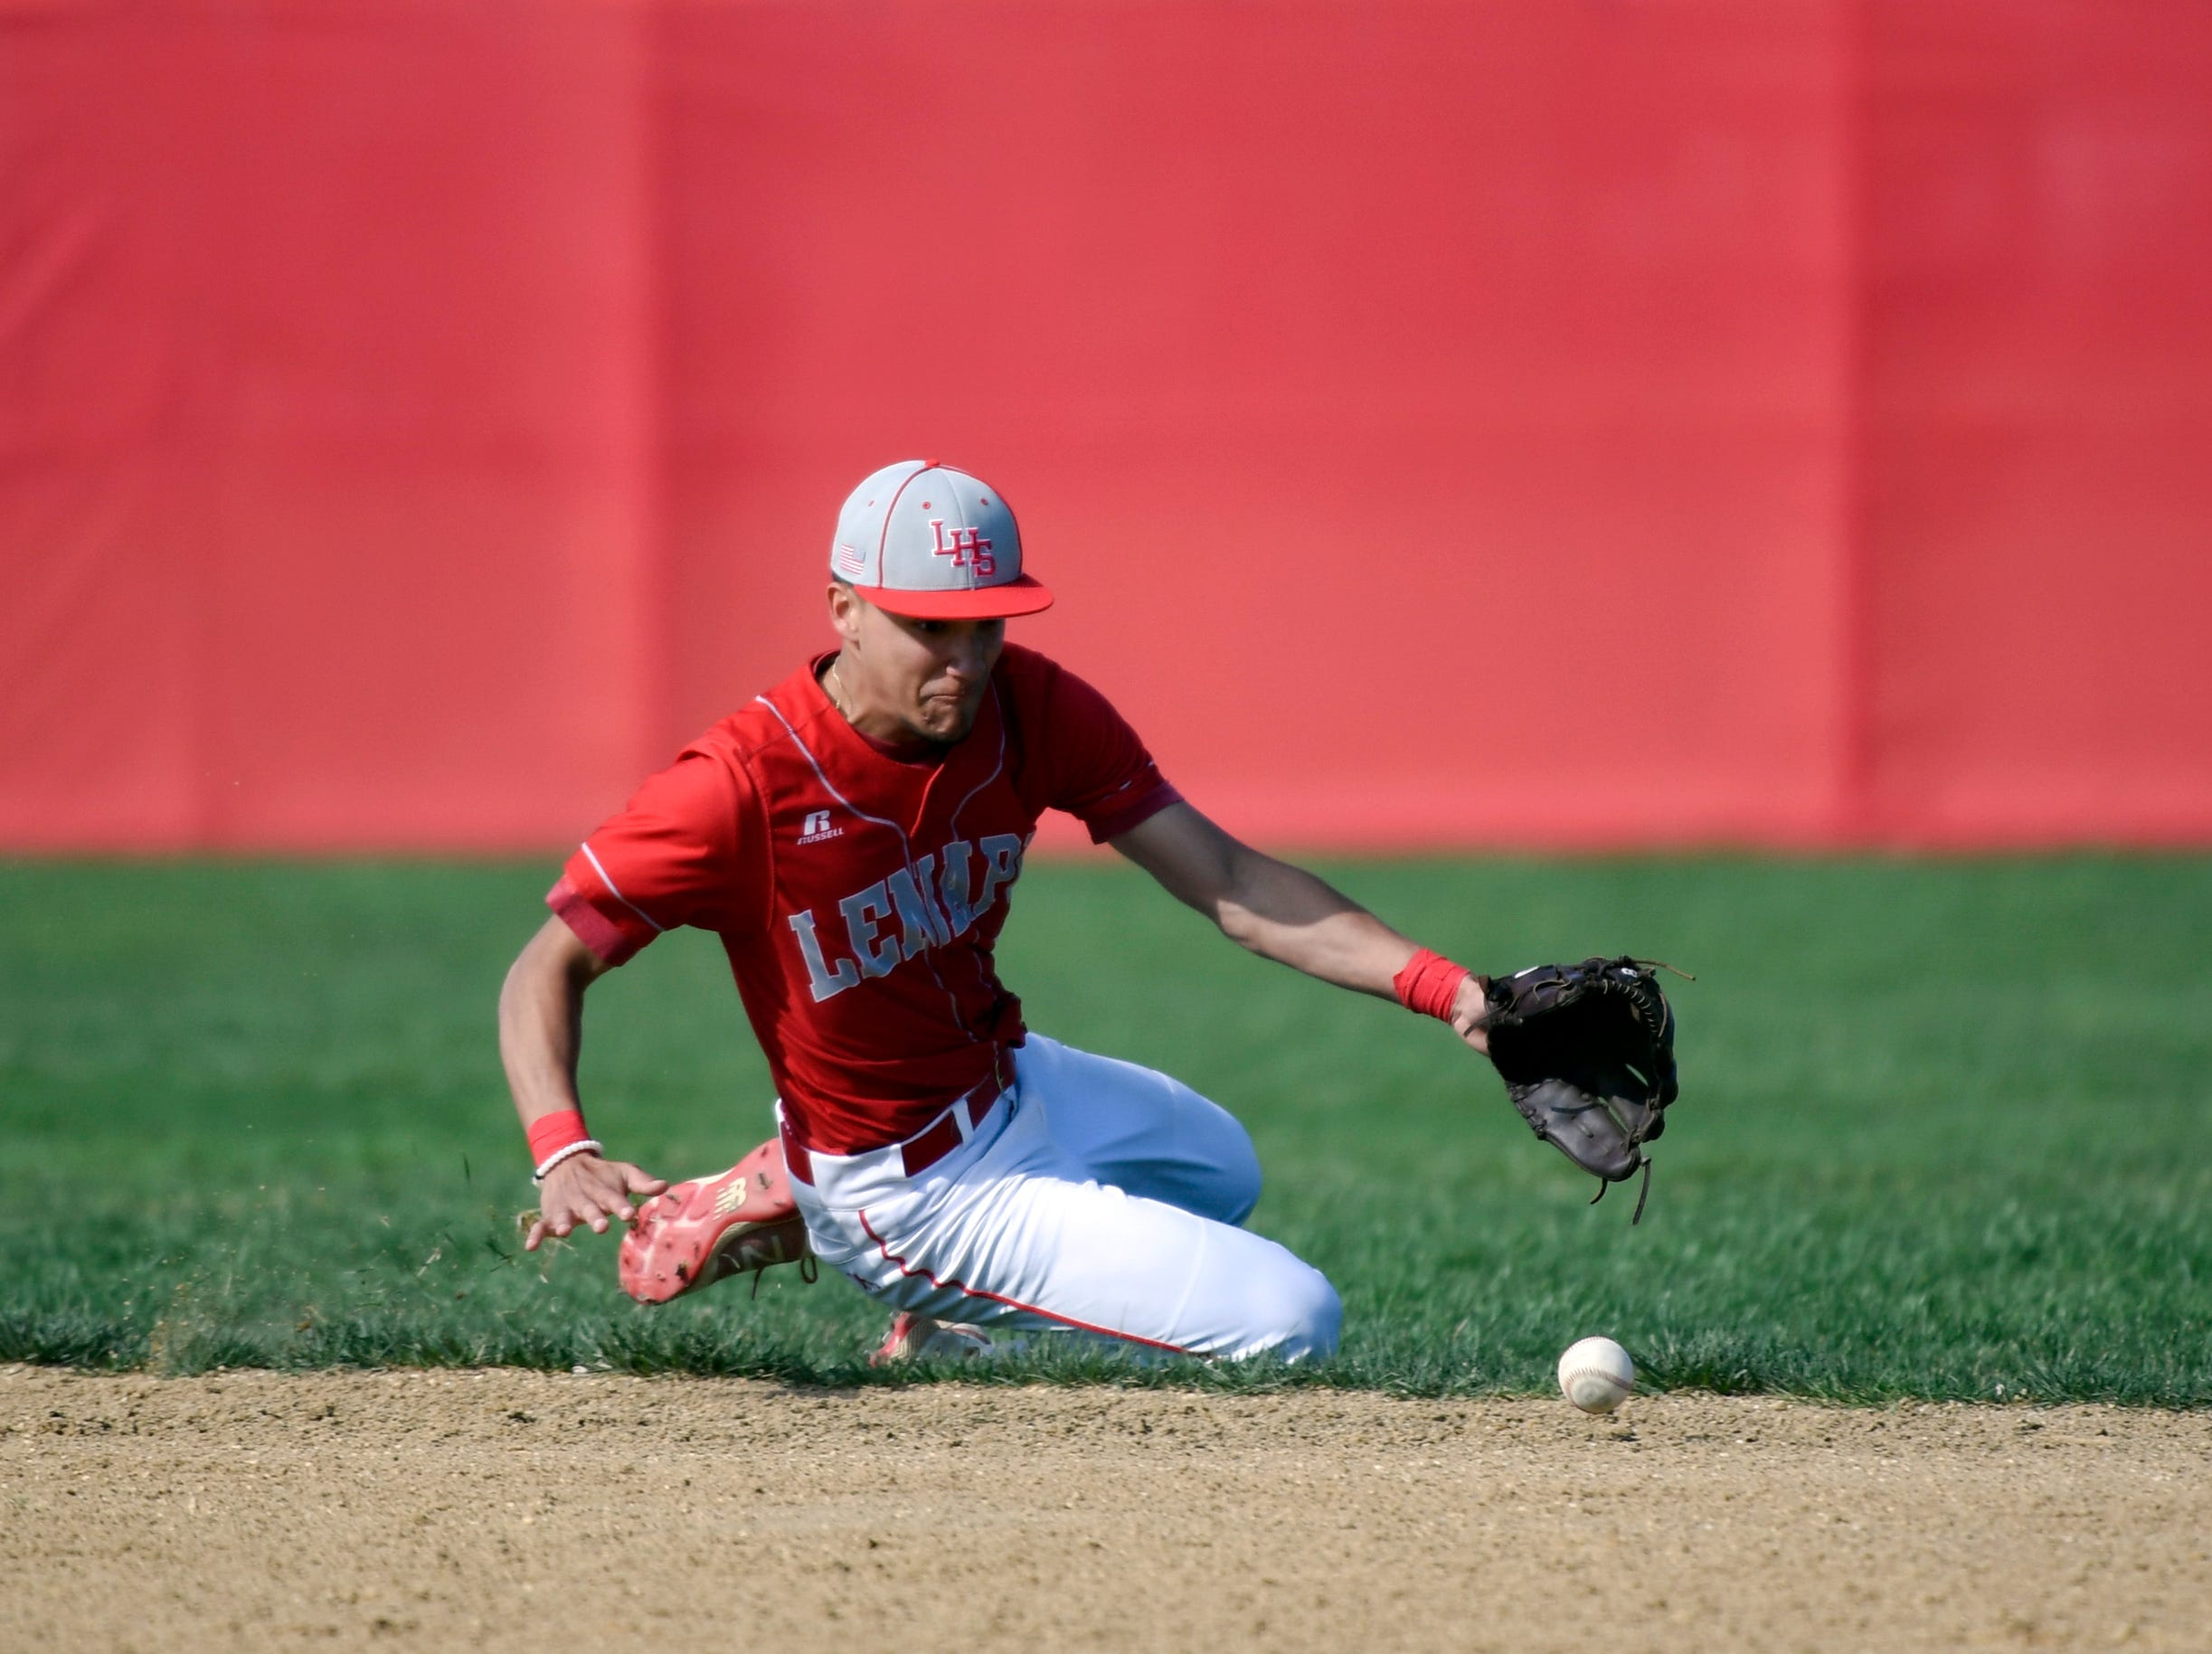 Lenape's Edwin Gonzalez (5) fields a grounder against Bishop Eustace Tuesday, April 16, 2019 in Medford, N.J. Bishop Eustace won 5-3 and head coach Sam Tropiano earned his record-setting 673rd win.